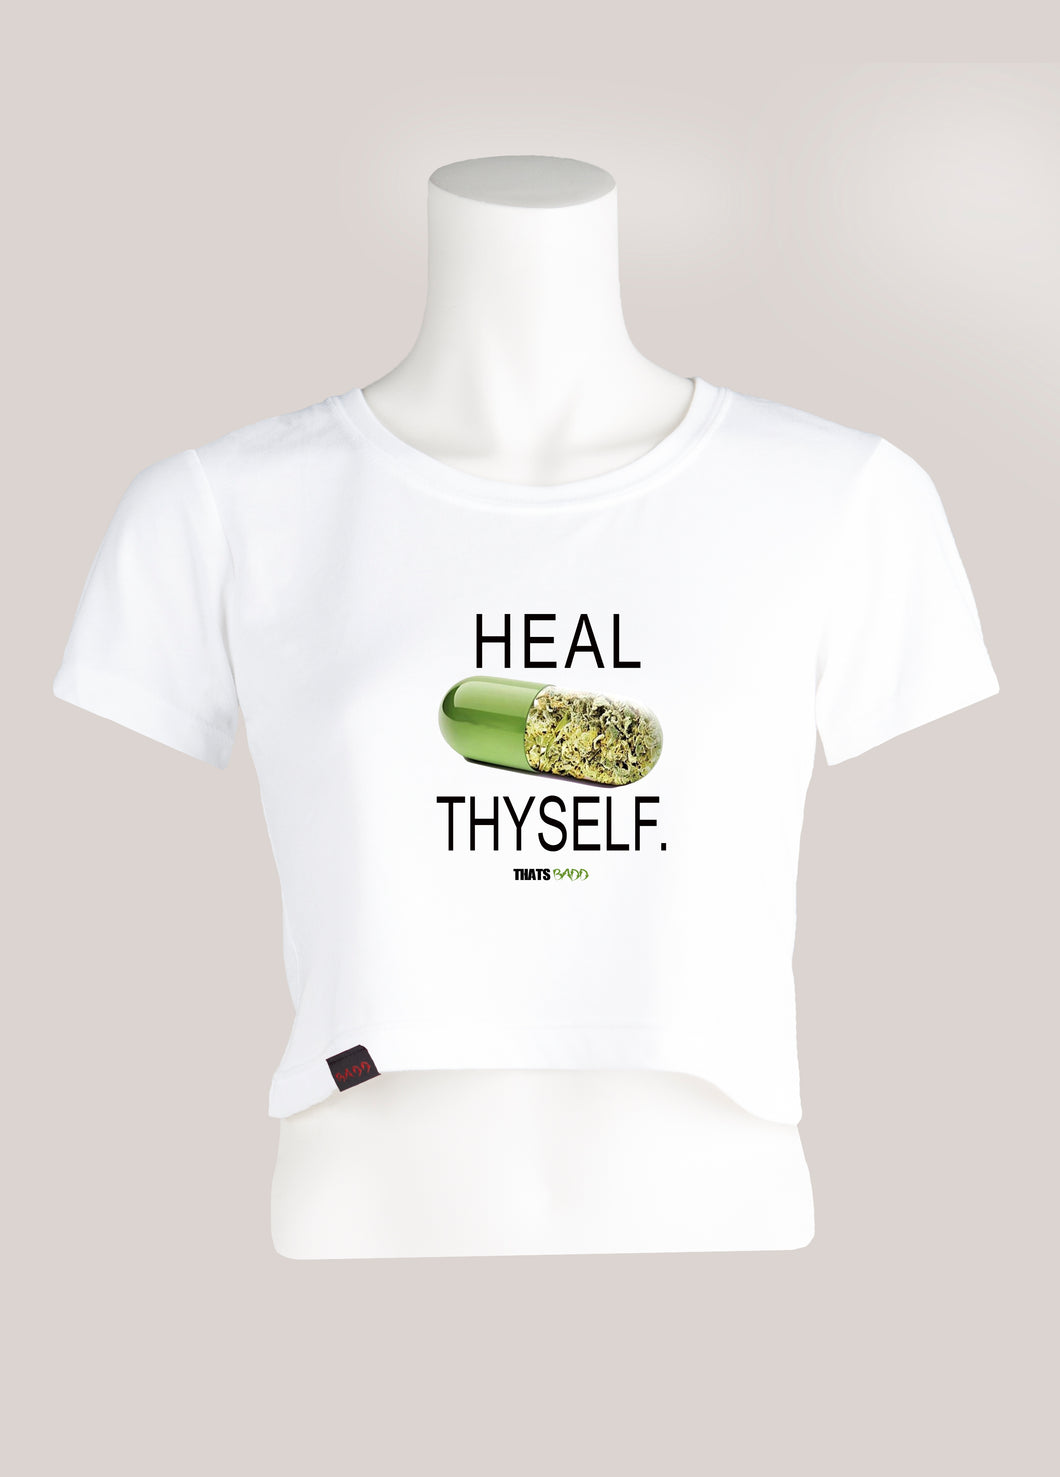 HEAL THYSELF Women's Marijuana Cropped T-Shirt